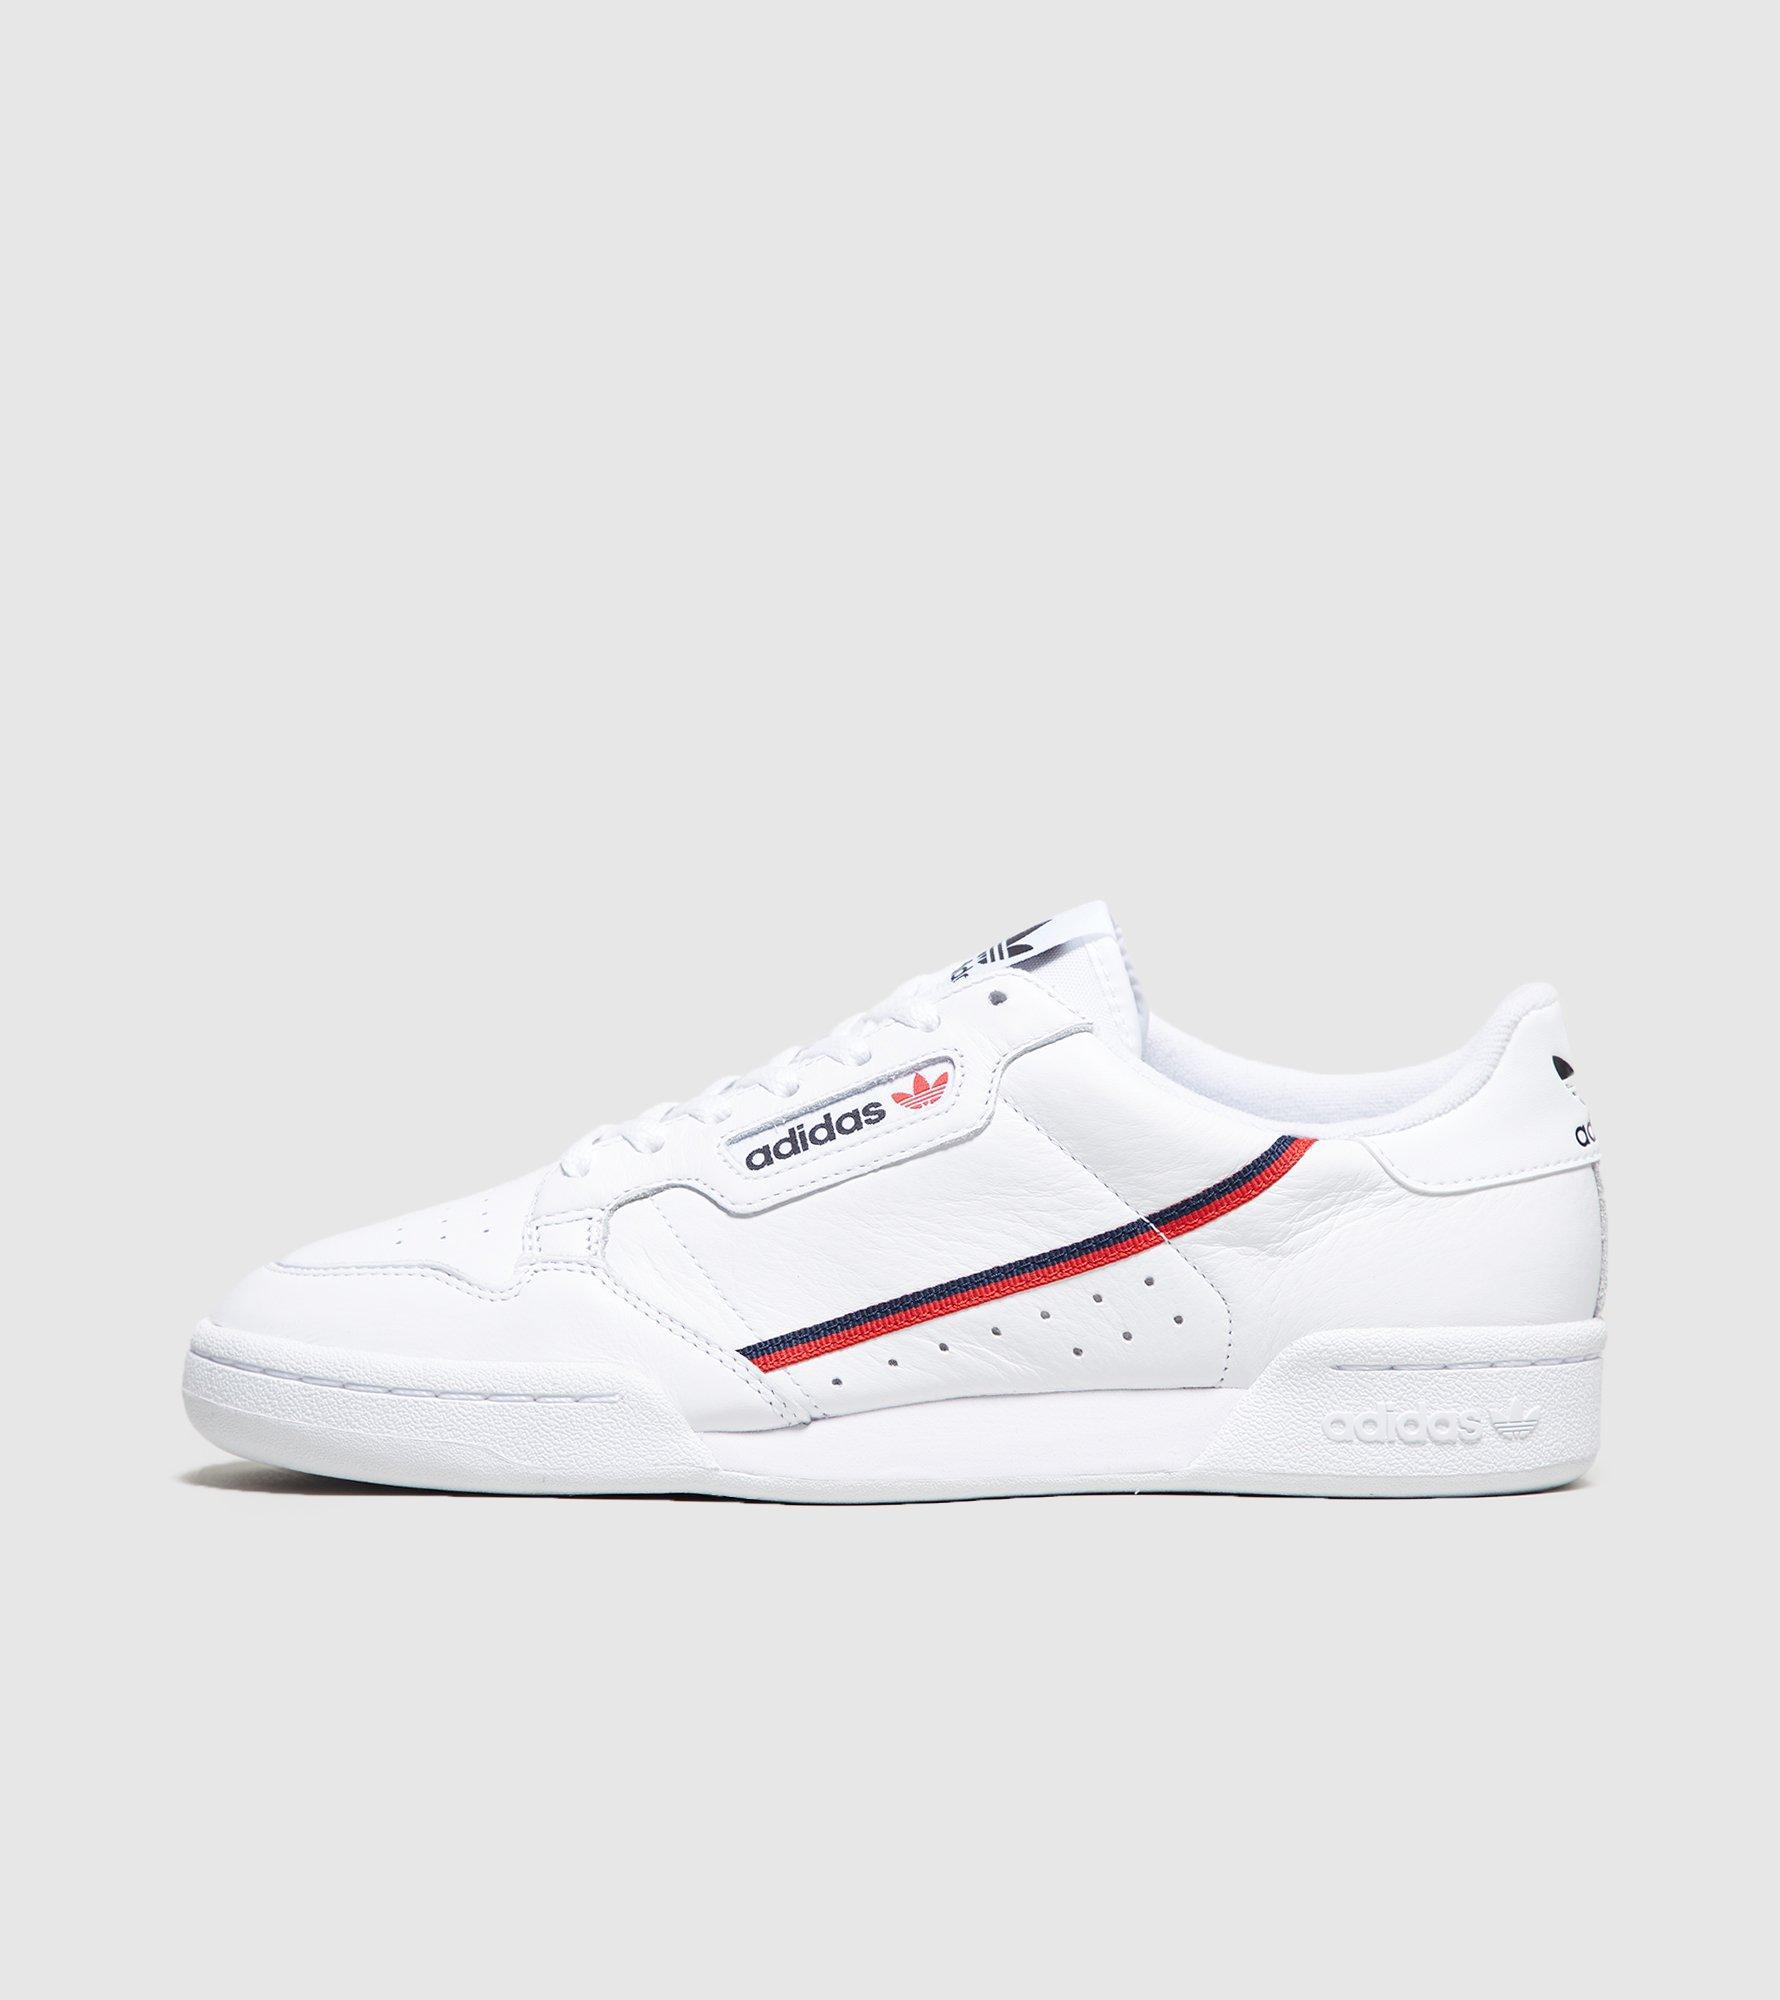 wholesale dealer 2bf1d 93e74 adidas Originals Continental 80 in White for Men - Lyst